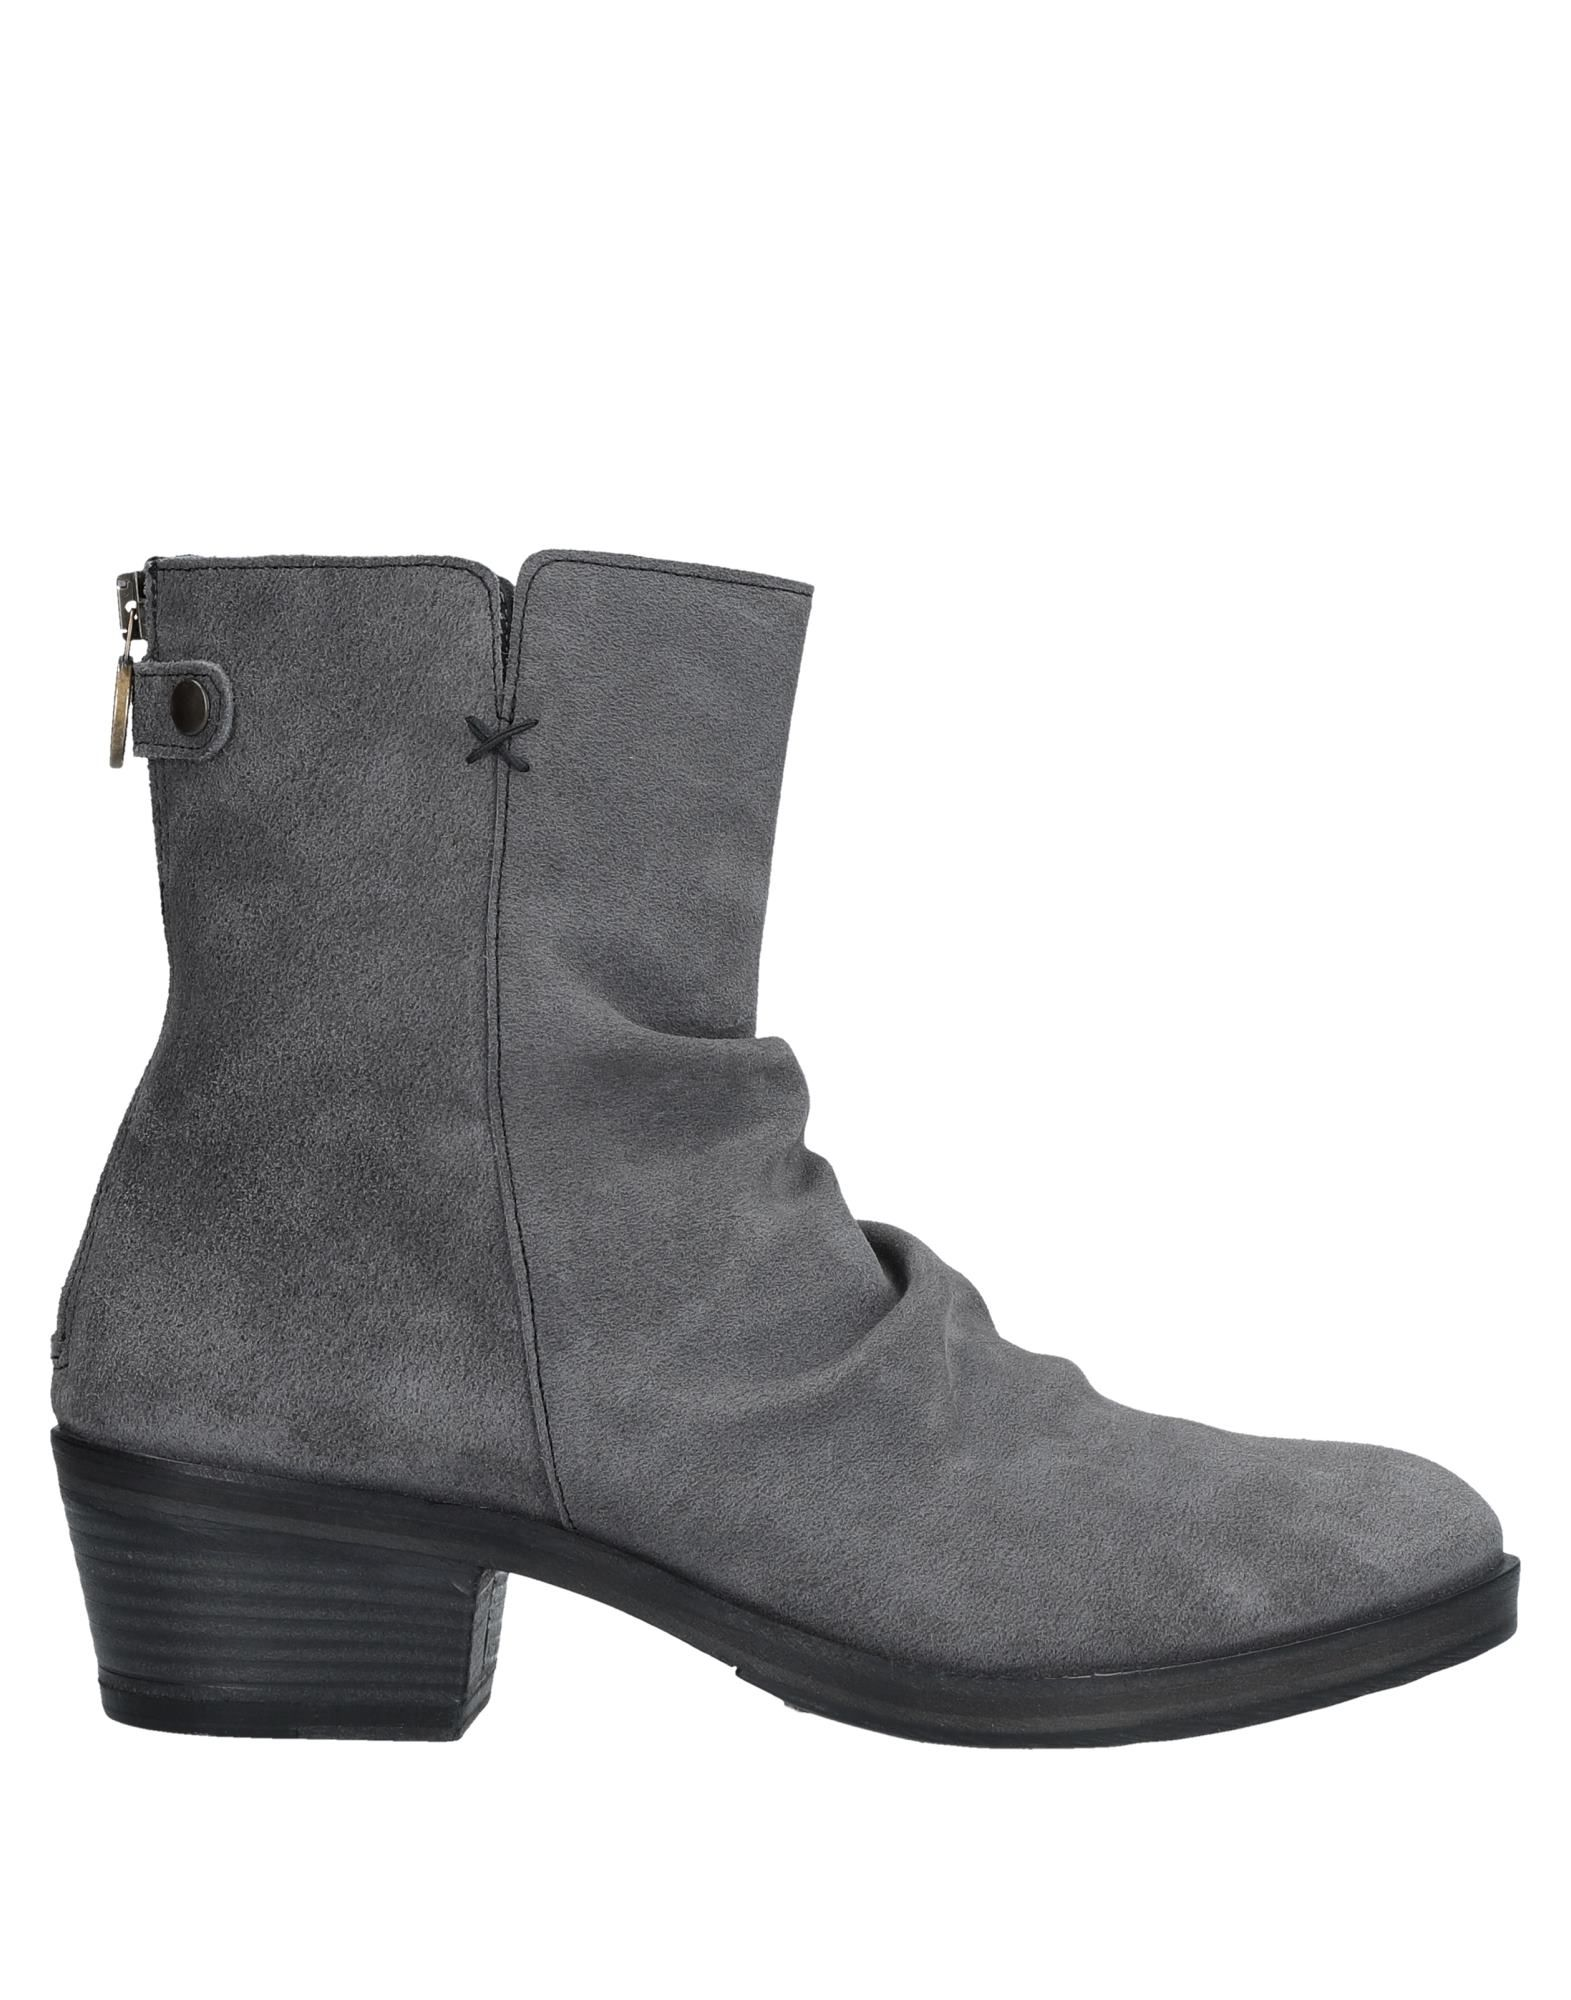 Fiorentini+Baker Ankle Boot Boots - Women Fiorentini+Baker Ankle Boots Boot online on  Australia - 11537355GO ef254a